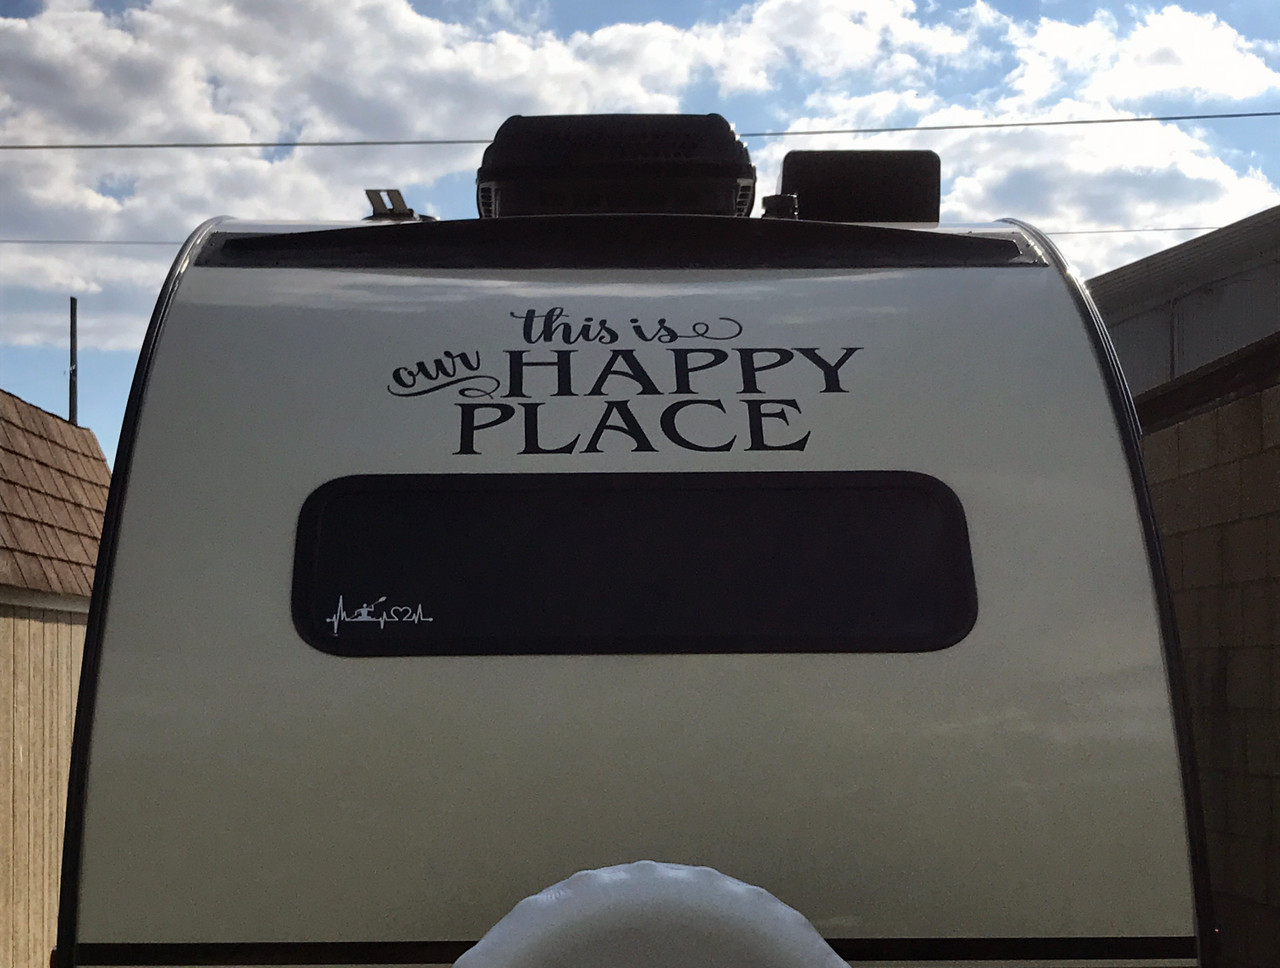 This is Our Happy Place - Vinyl Decal Sticker - Camping Travel Trailer RV Glamping